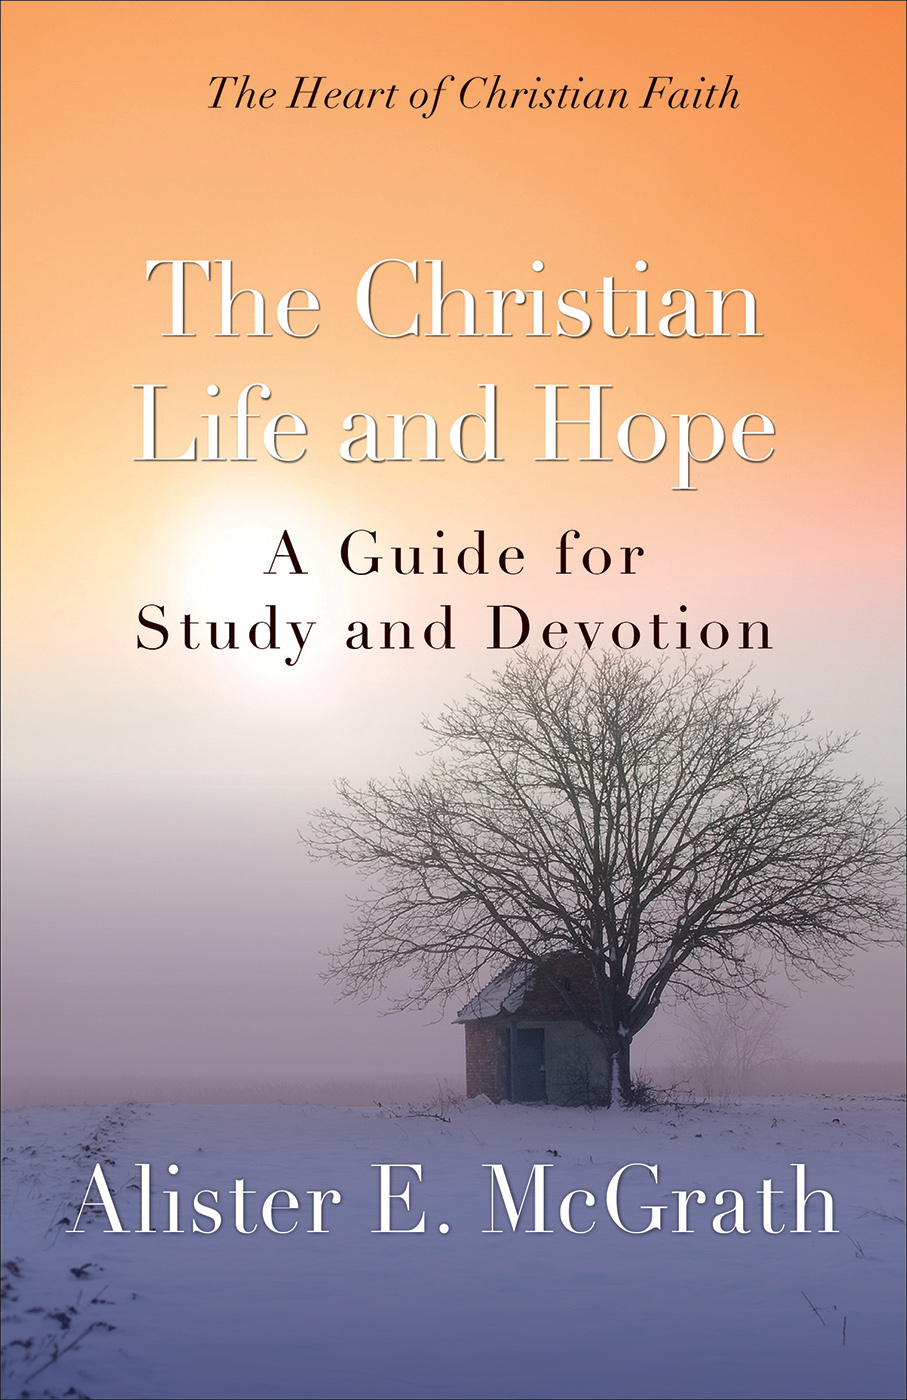 The Christian Life and Hope